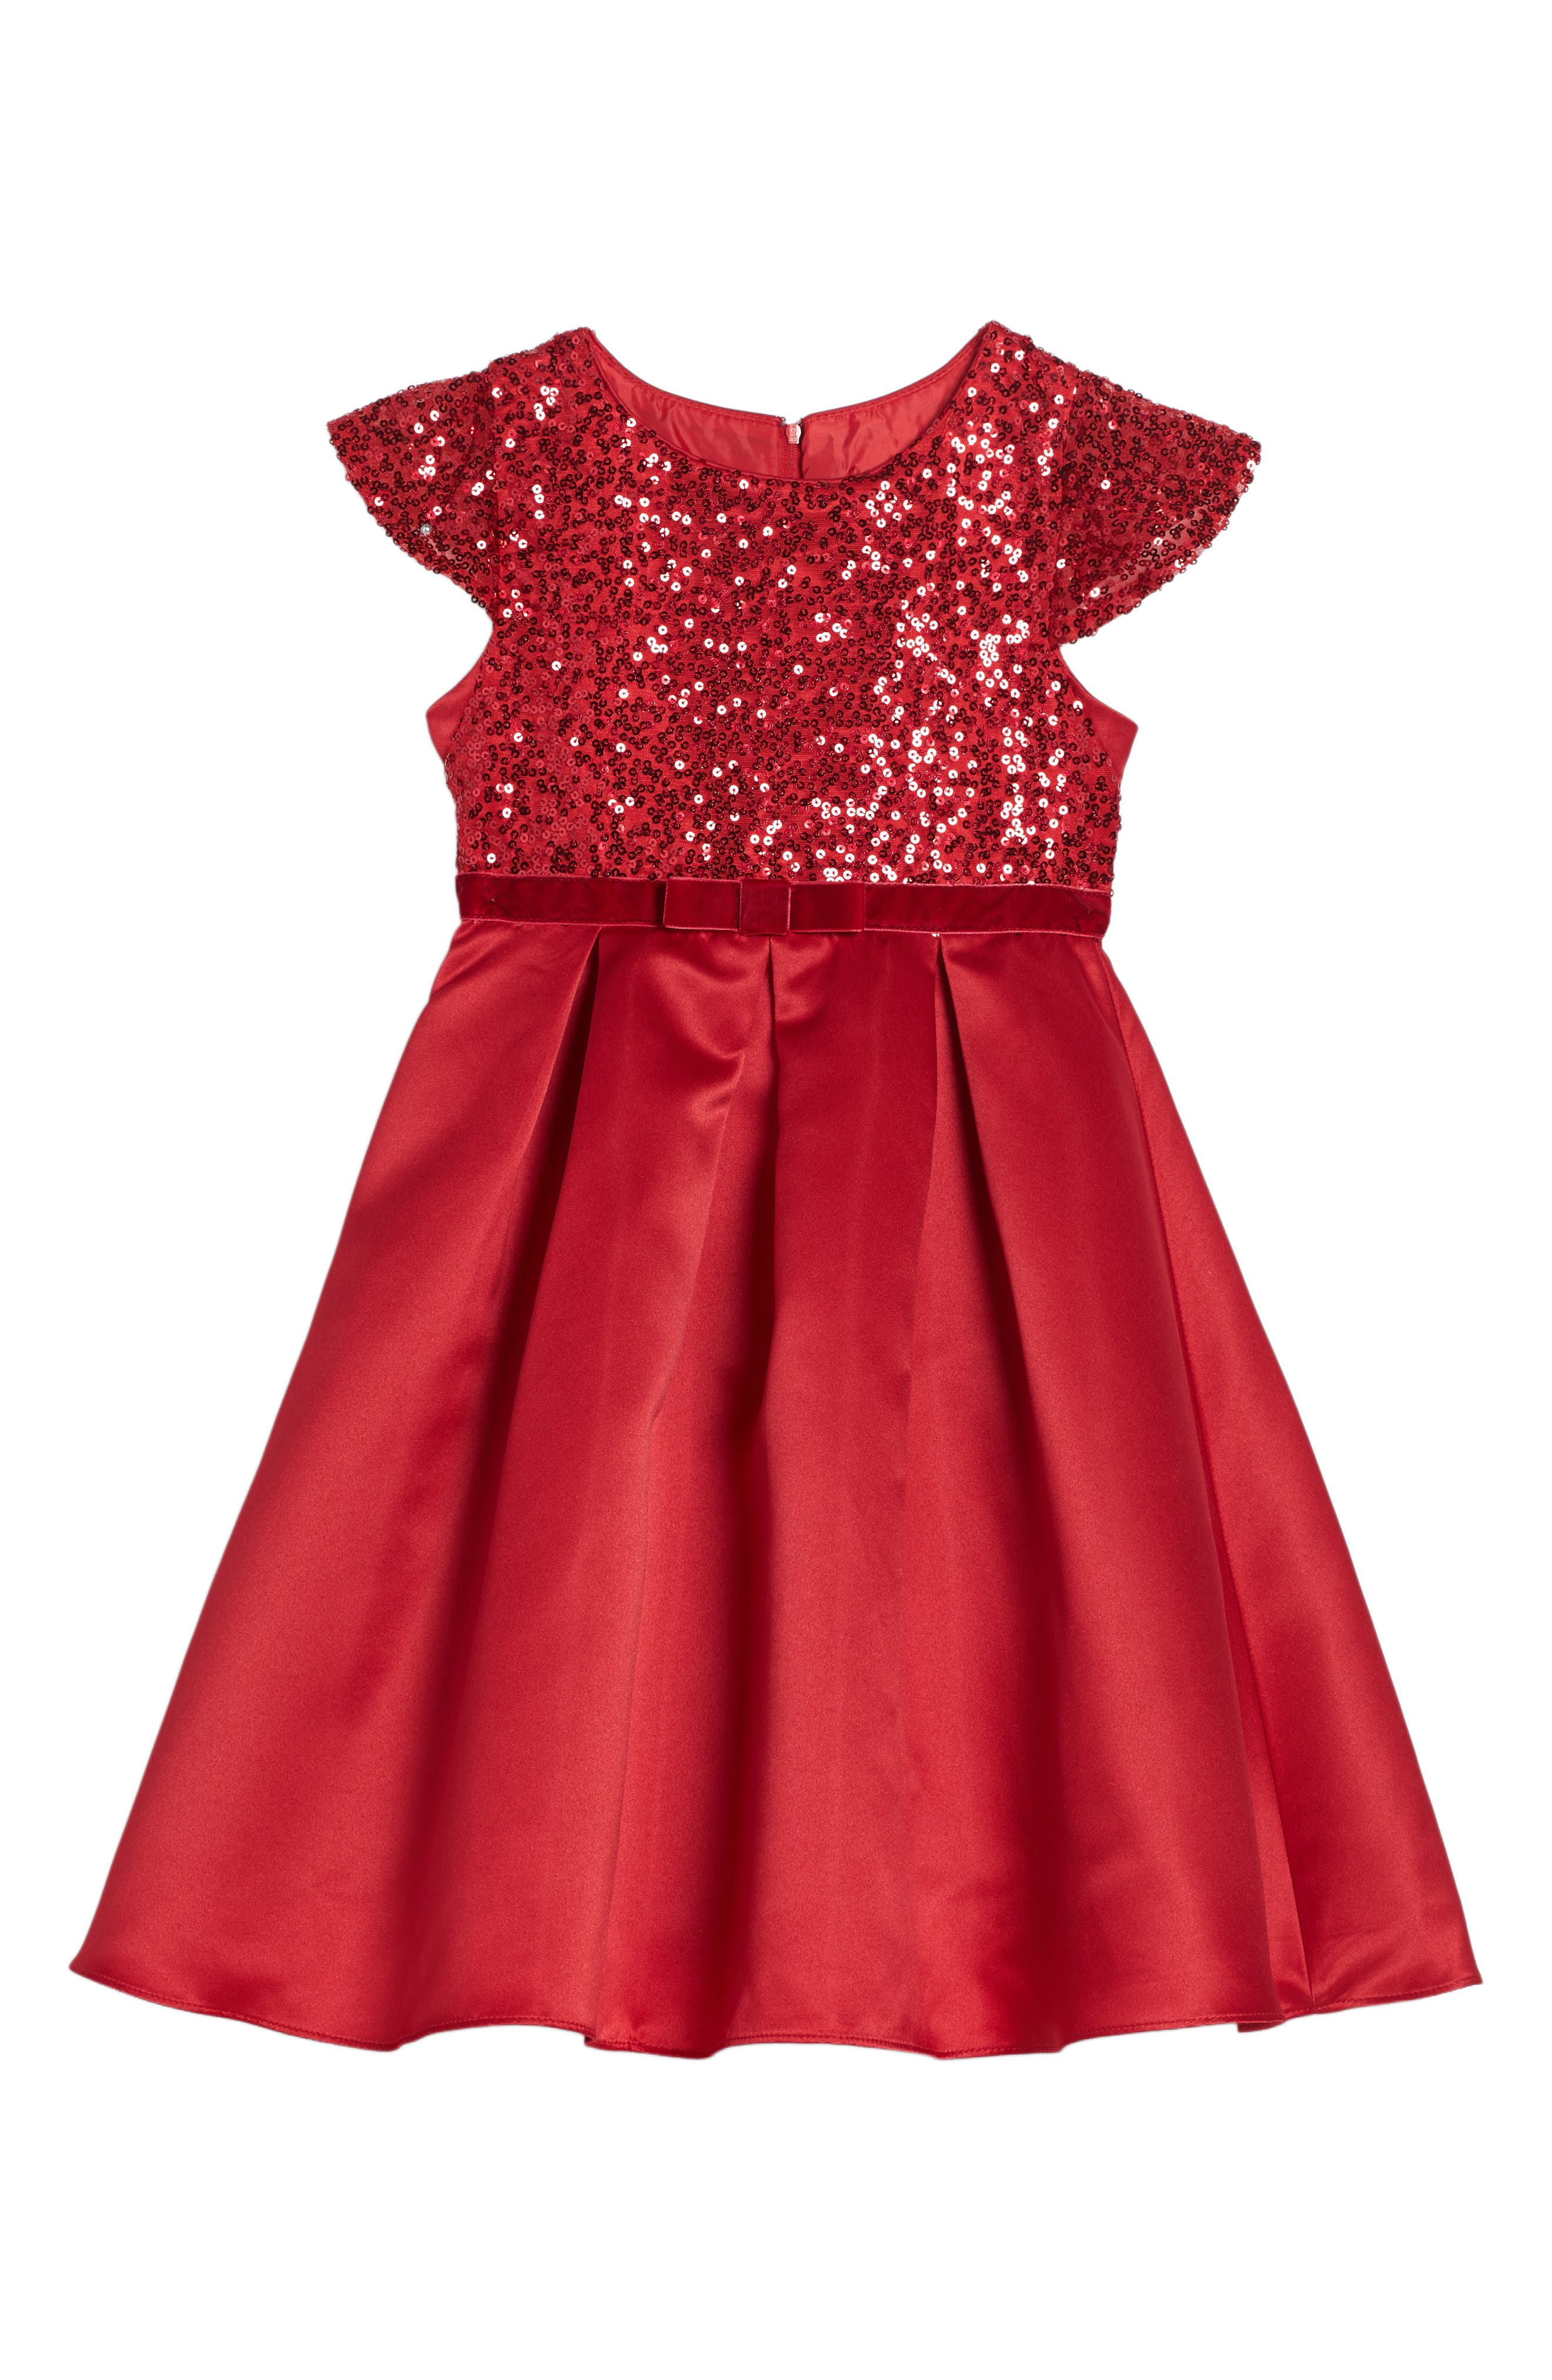 Dorissa Jennifer Dress (Toddler Girls, Little Girls & Big Girls)